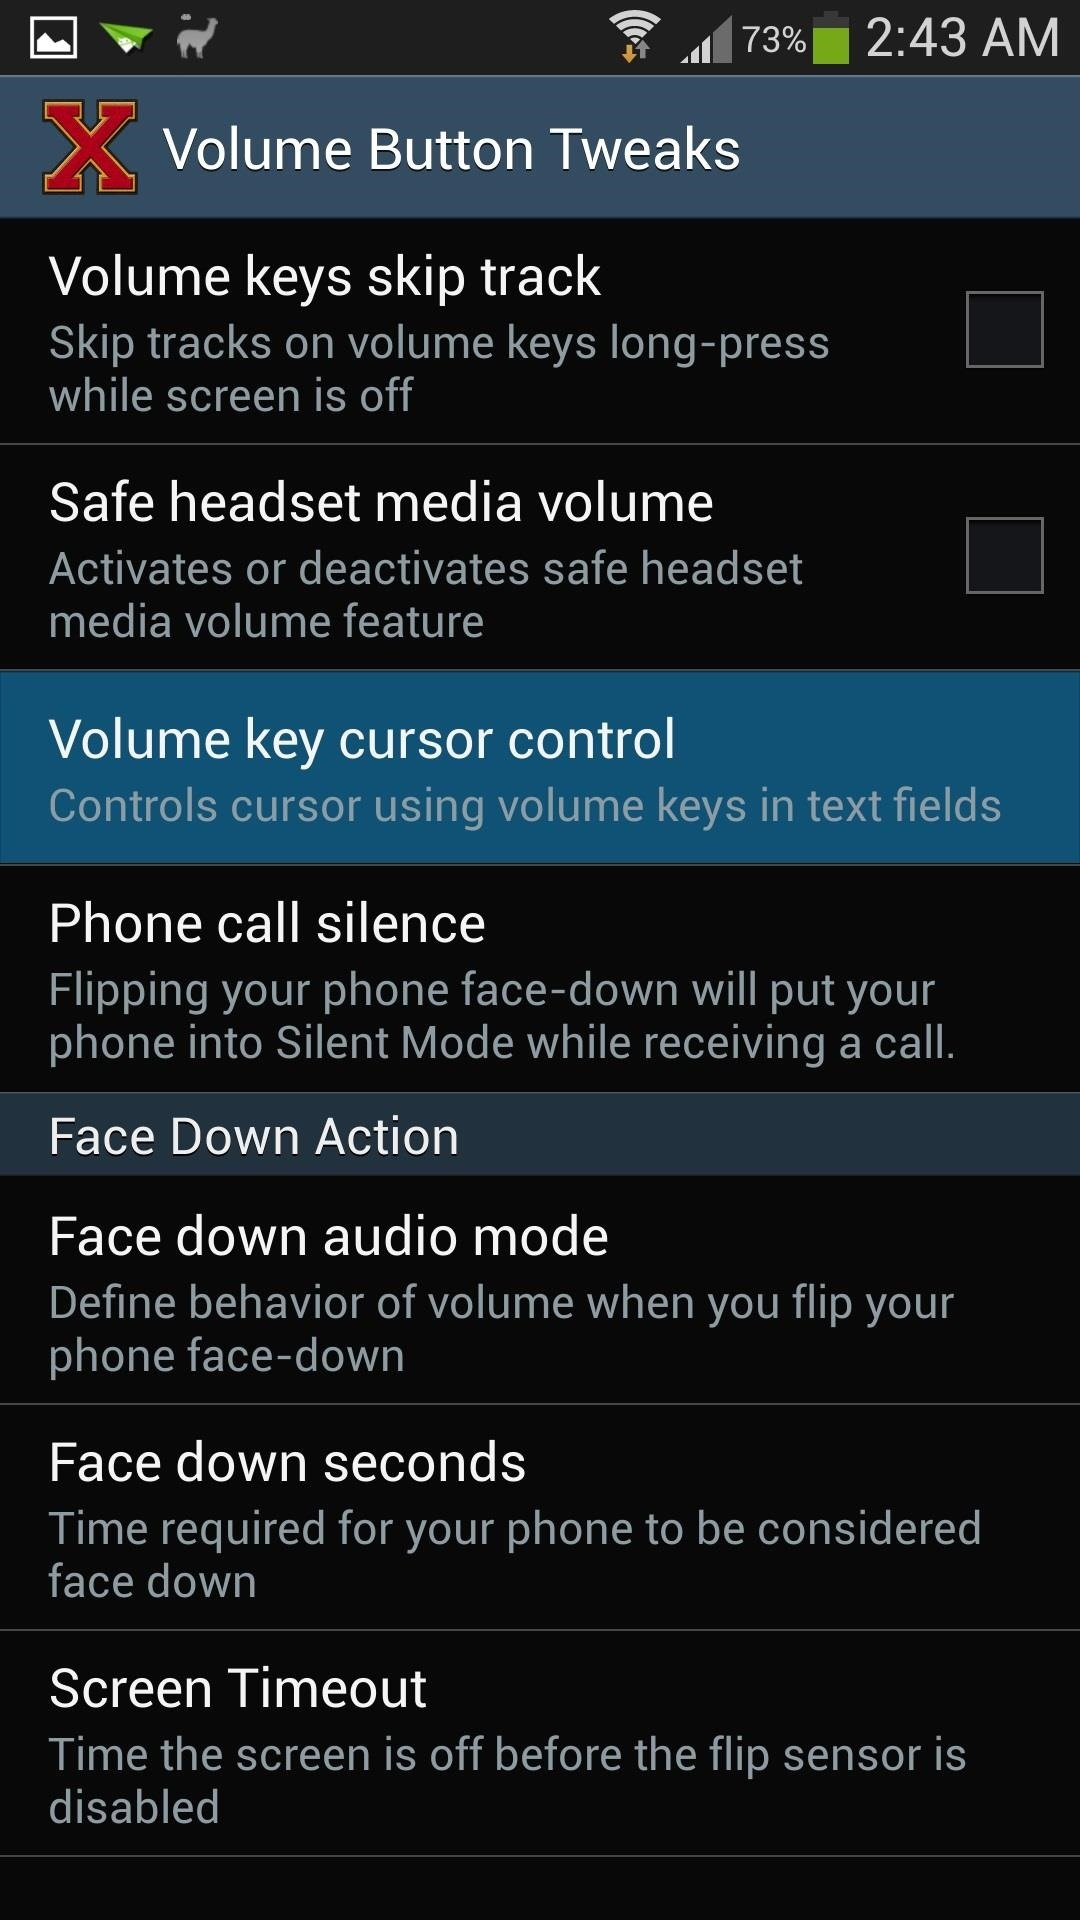 How to Control the Text Cursor Using the Volume Keys on Your Samsung Galaxy S4